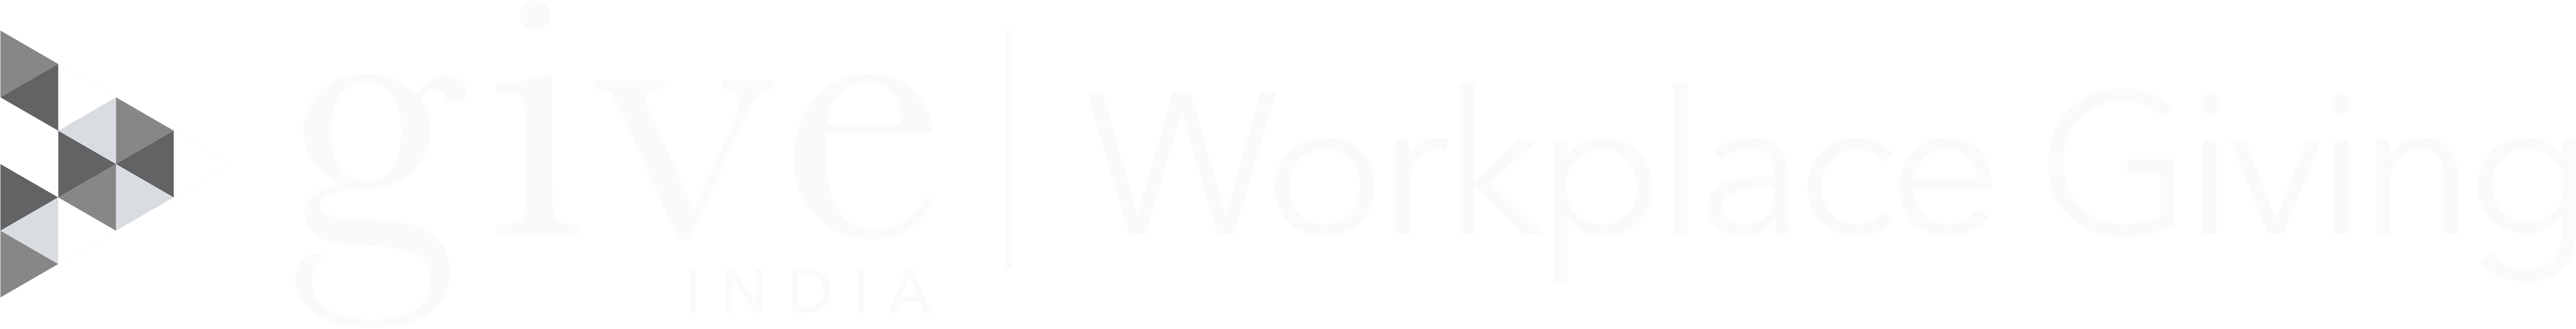 giveindia - workplace giving